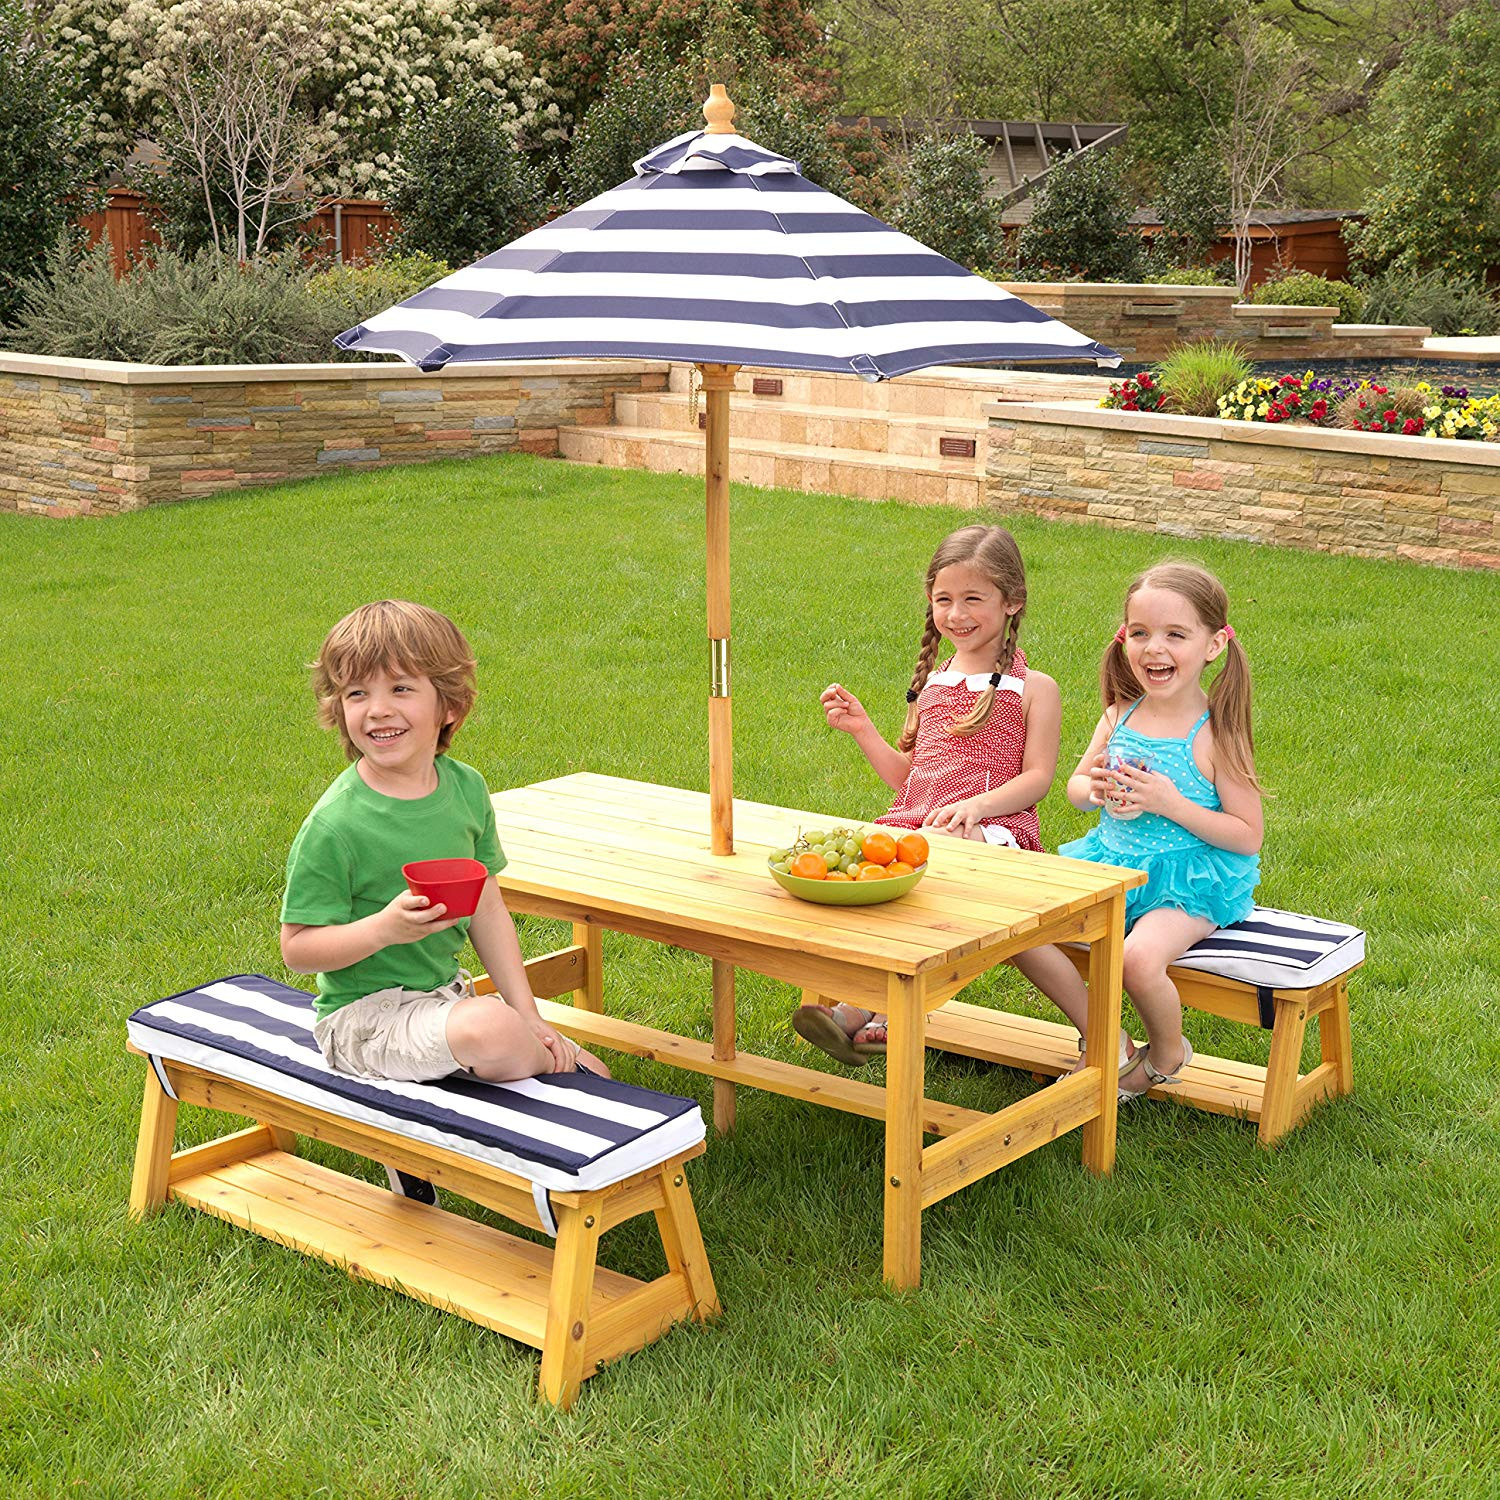 Best Kids Table  Top 10 Best Kids Picnic Tables in 2020 Reviews